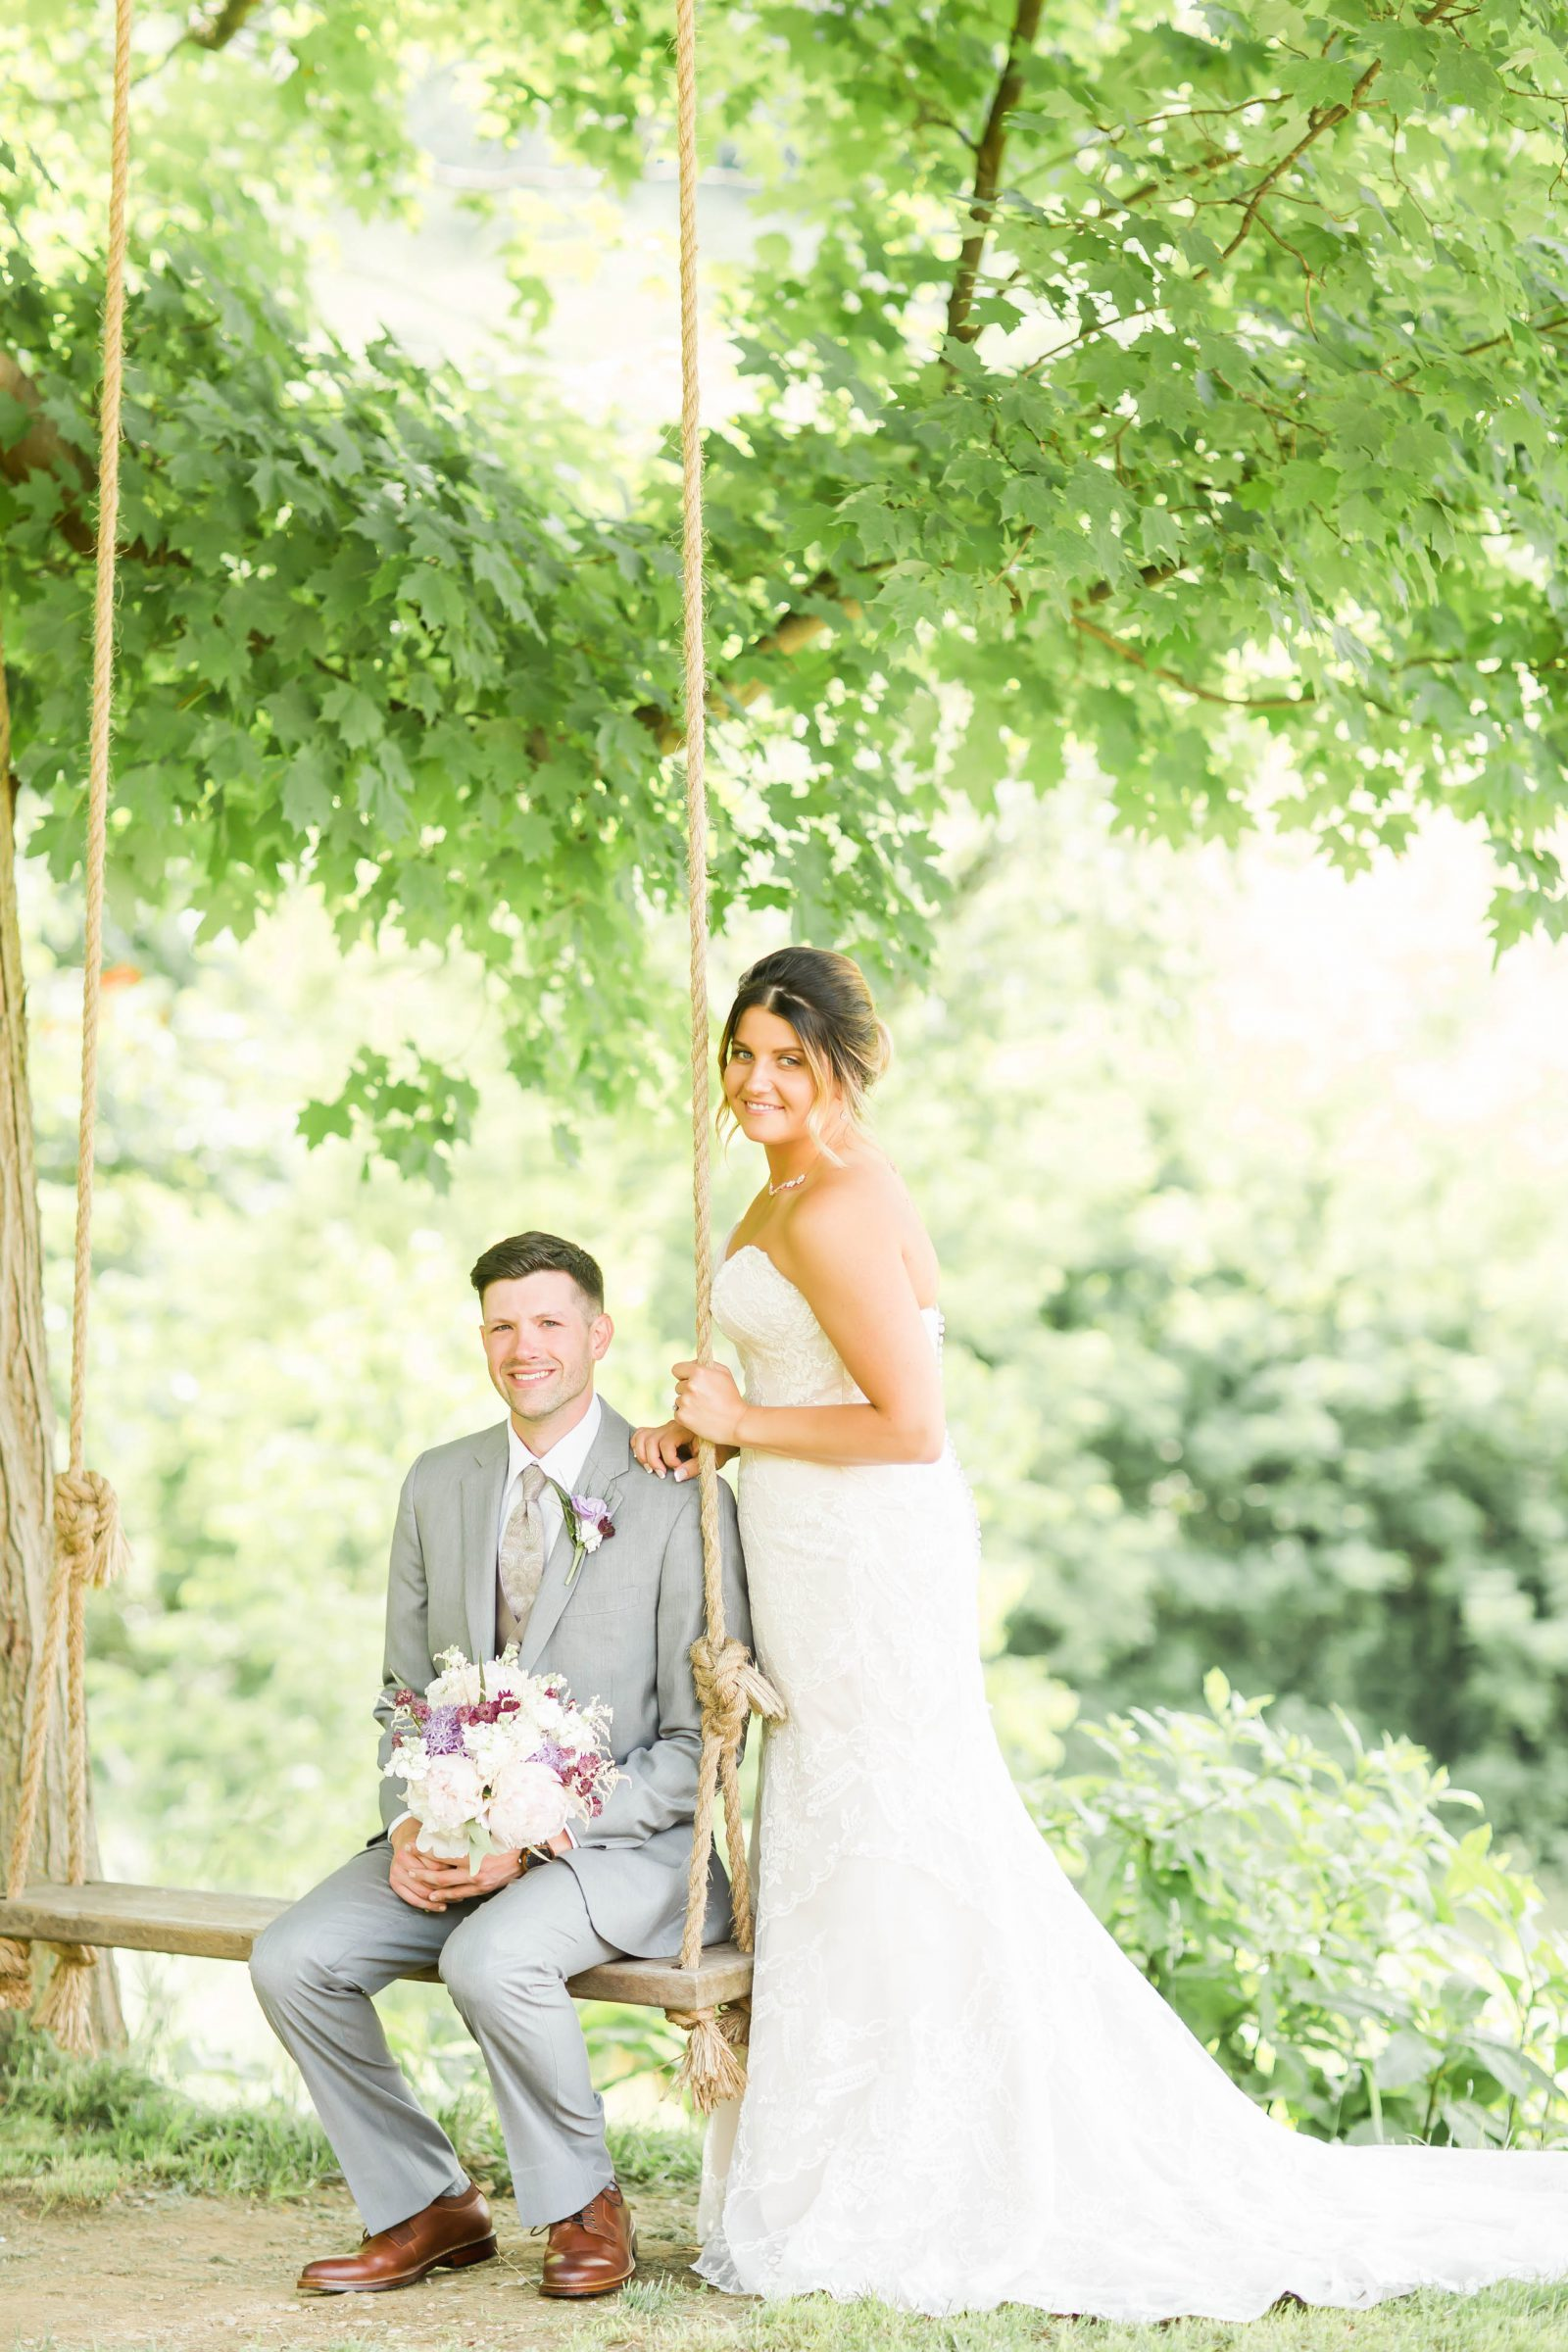 rivercrest-farm-summer-wedding-loren-jackson-photography-43